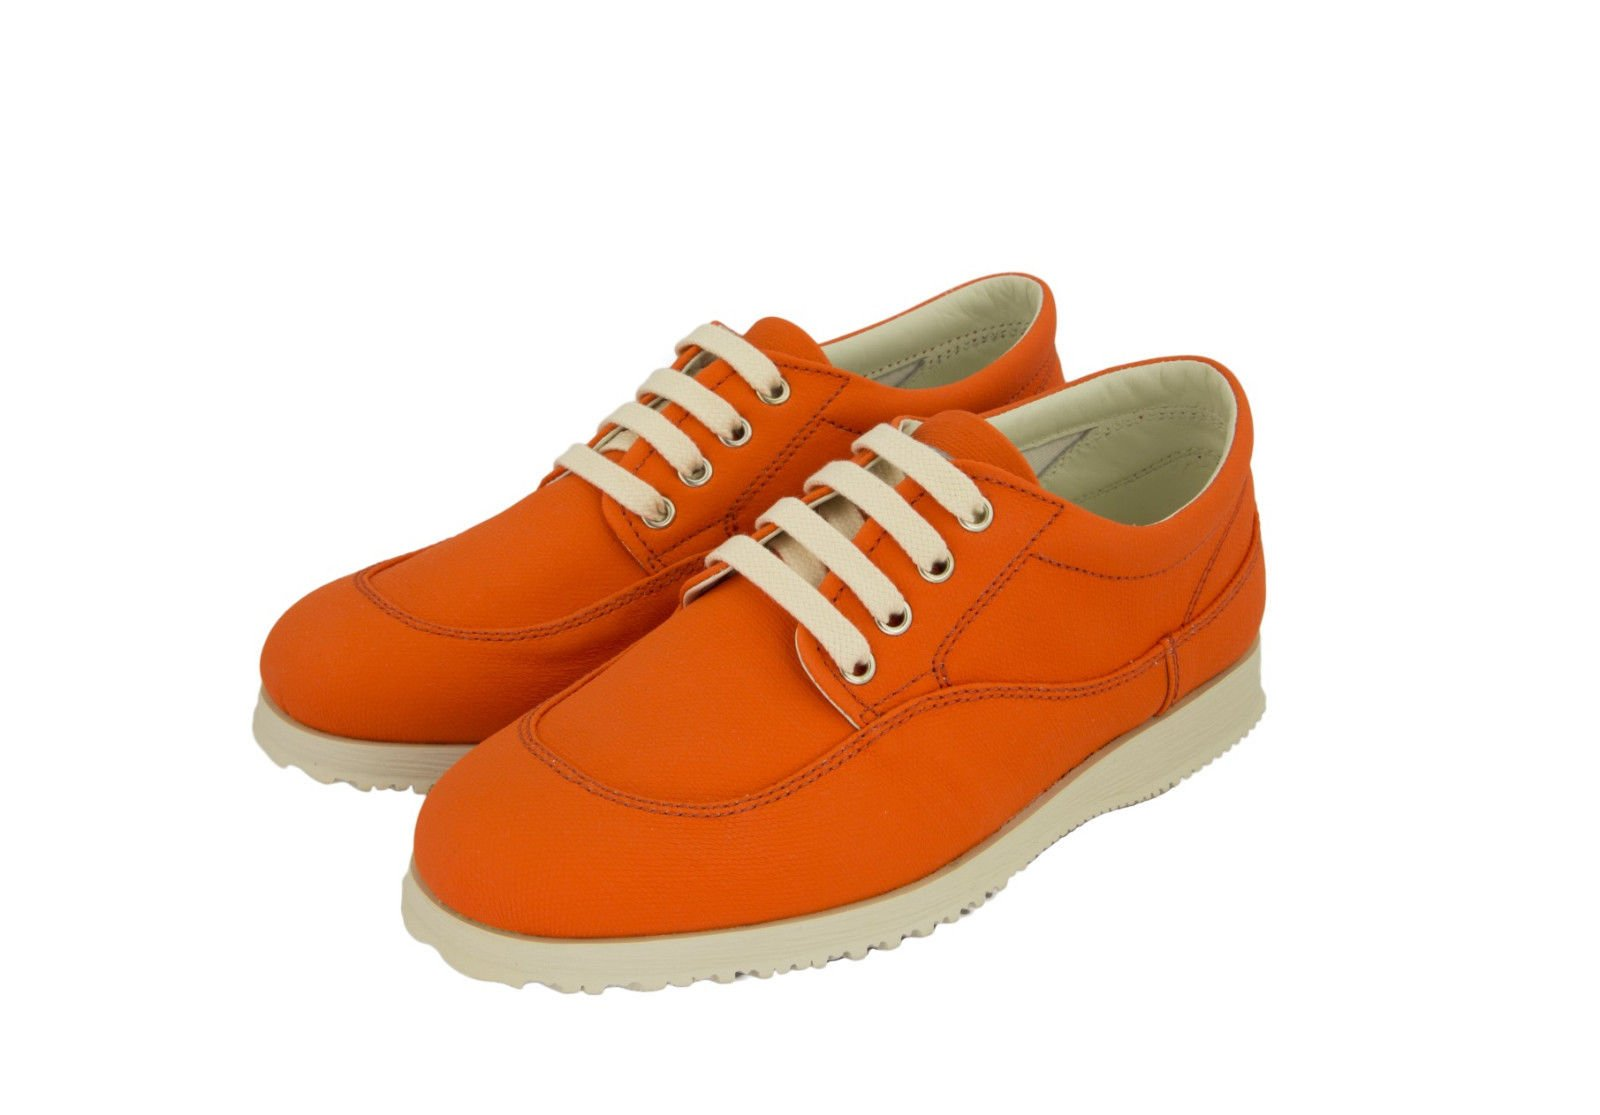 Hogan by TOD'S Fondo Traditional Orange Coated Canvas Oxfords Shoes US 7/37